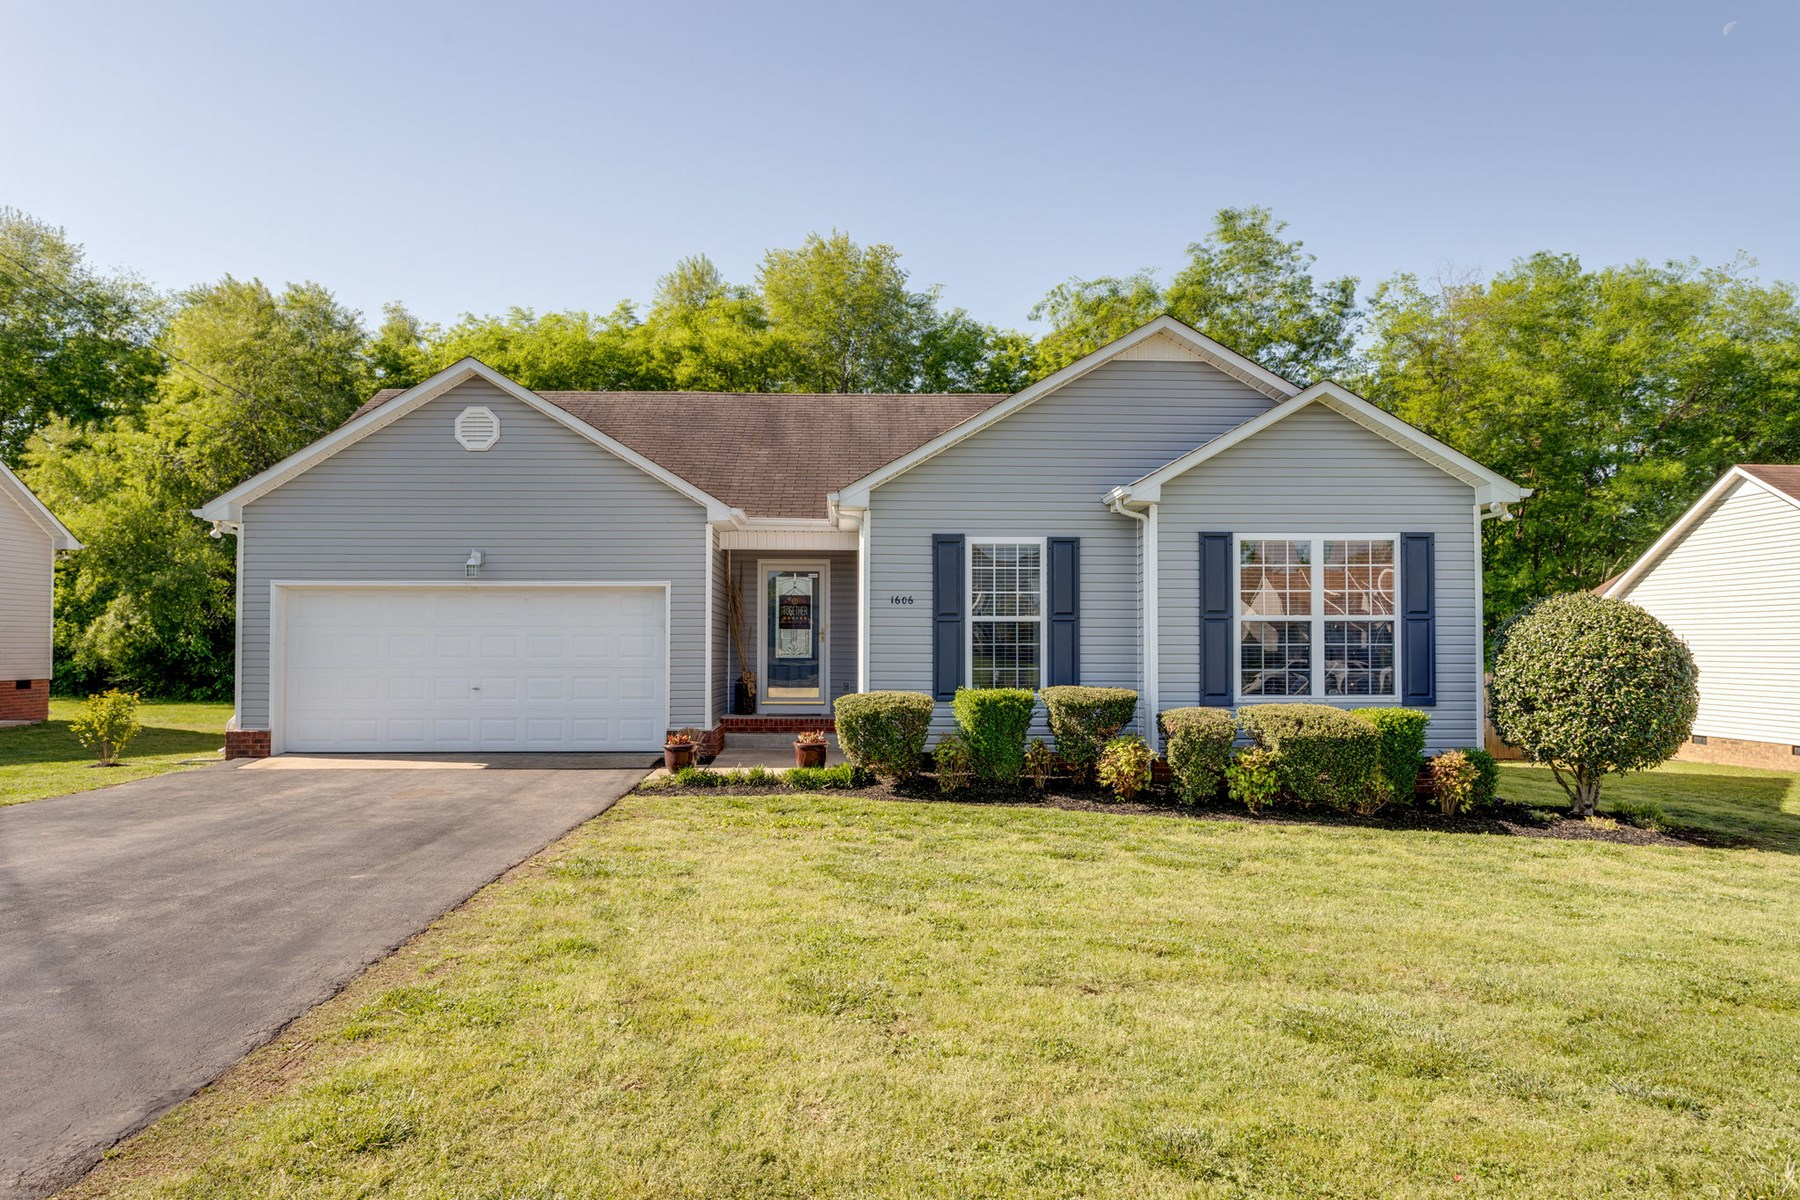 Adorable Ranch 3 Bdrm/2 Bath, in Maury County Tennessee